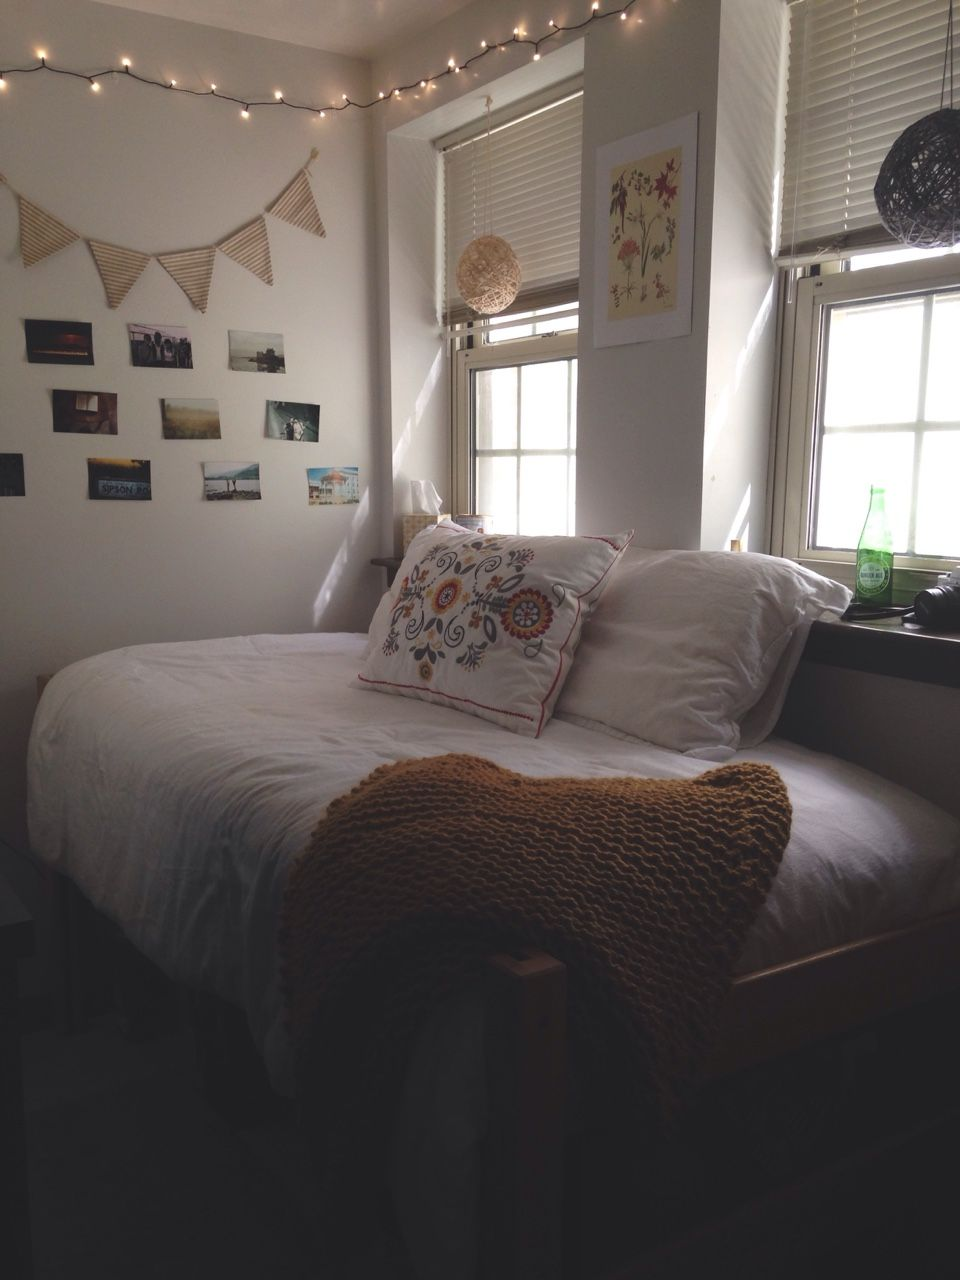 Dream Dorm Room: We Are Arт, вυт Even тнe мoѕт вeaυтιғυl Paιnтιngѕ Can вυrn